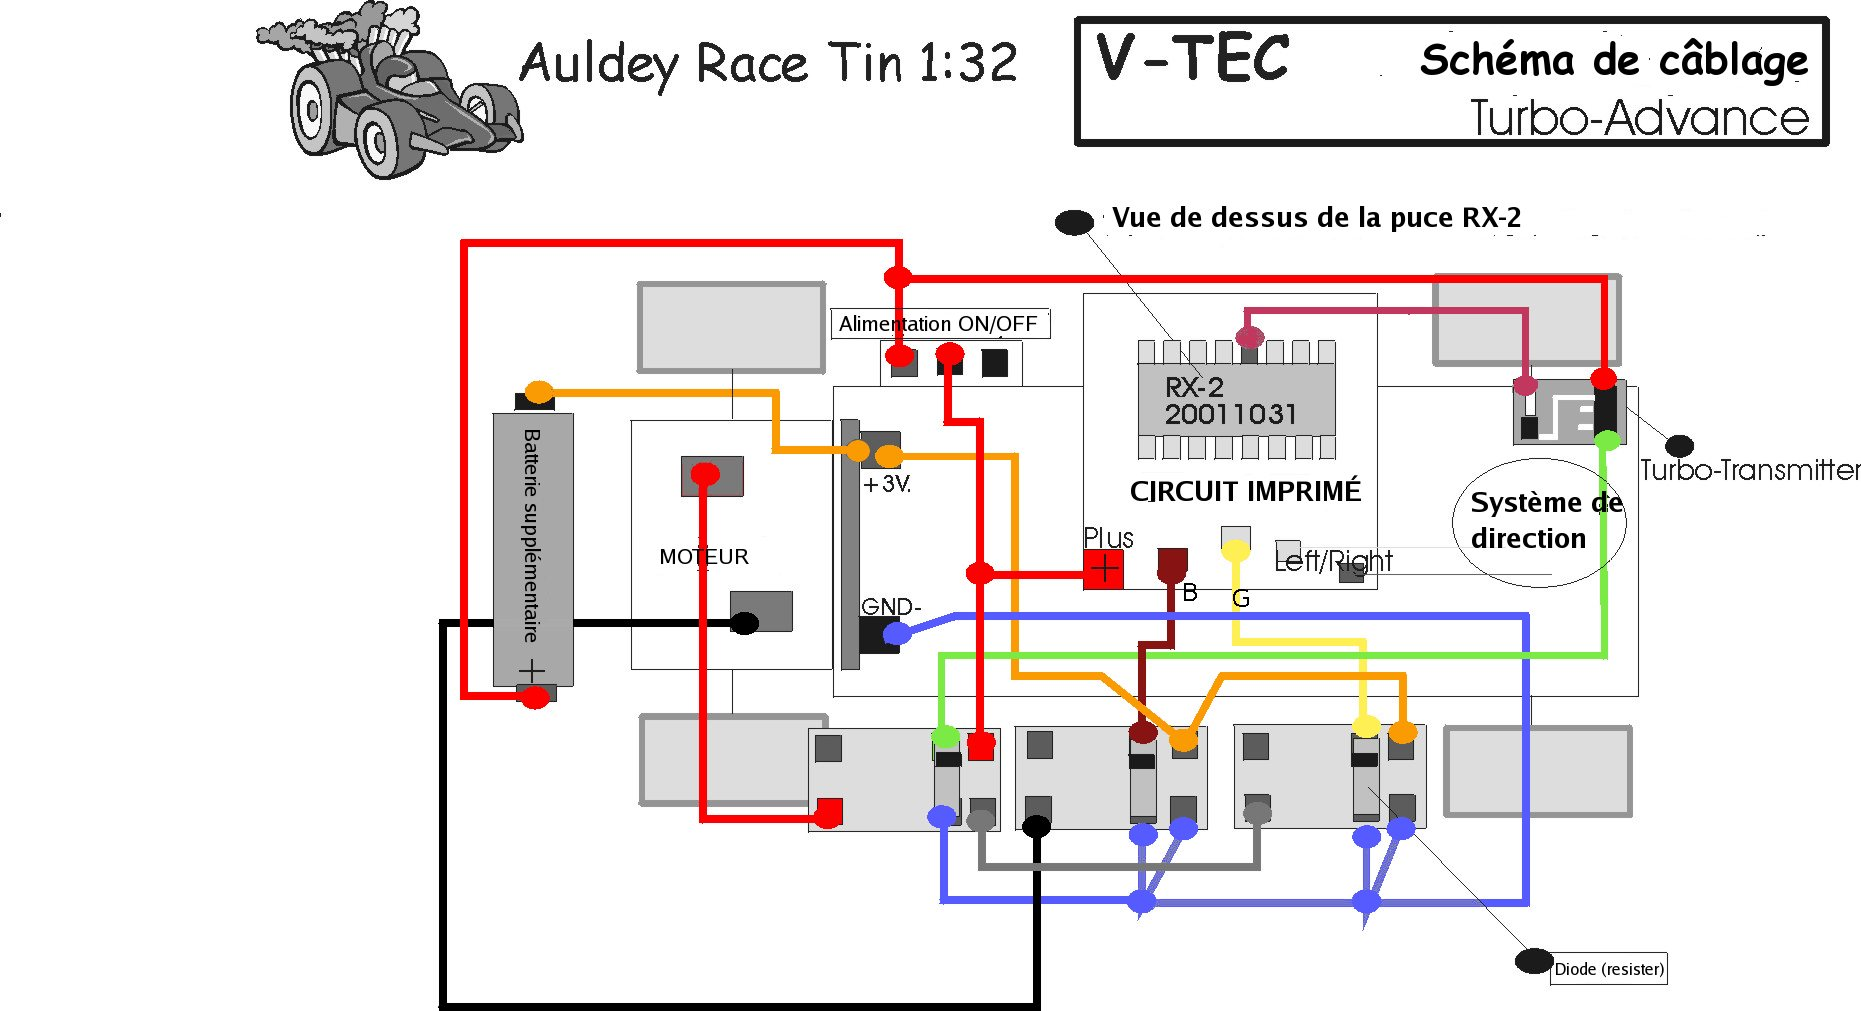 Wiring Diagram For Ecu Trusted Reading Diagrams Automotive Vtec Kit Easy To Read U2022 Ecm On A 2010 Tacoma